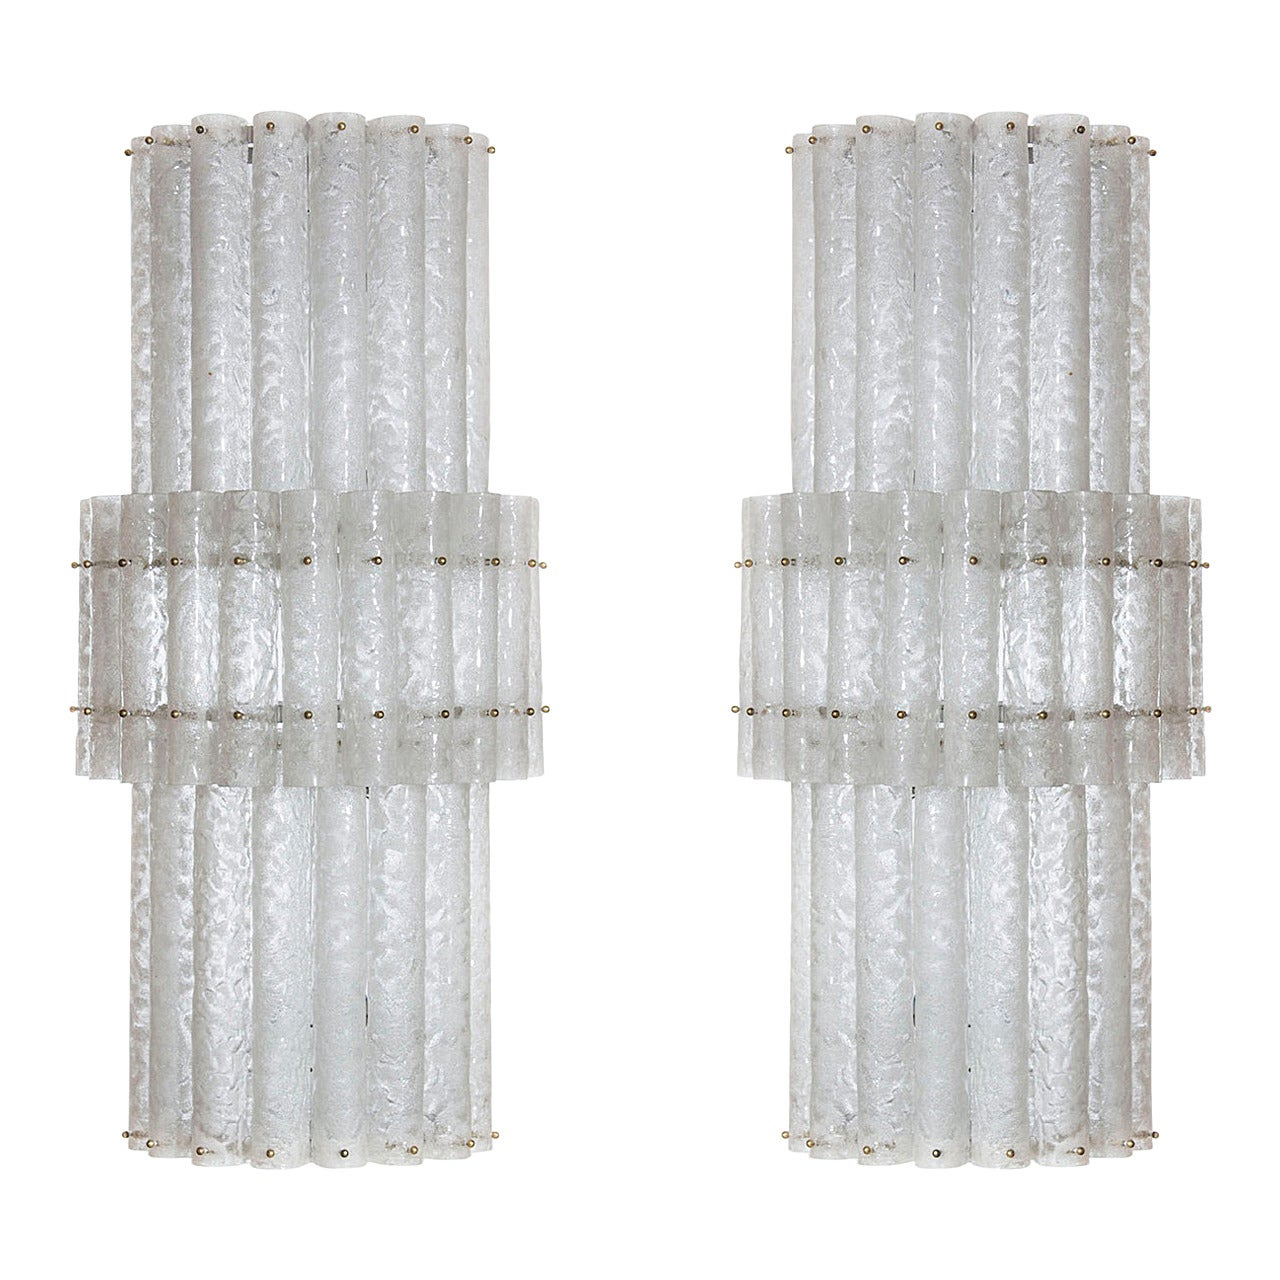 Pair of huge Sconces in Murano Glass, attributed to Mazzega 1970s, Italy